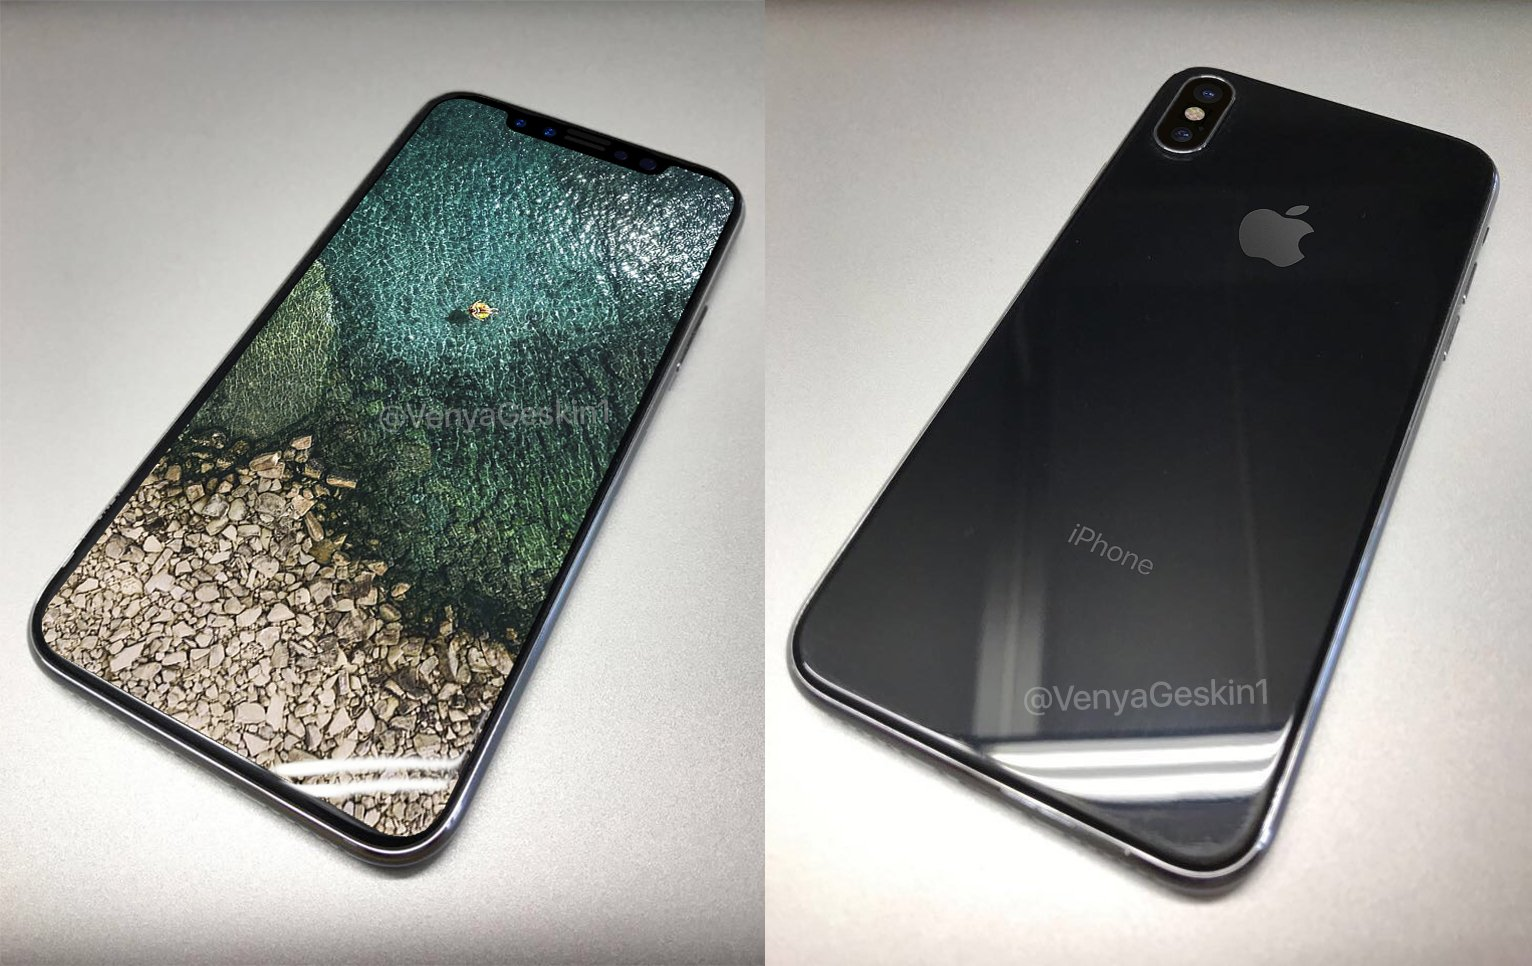 The drawings and the cover image for smartphone iPhone 8 allow to learn more about its design